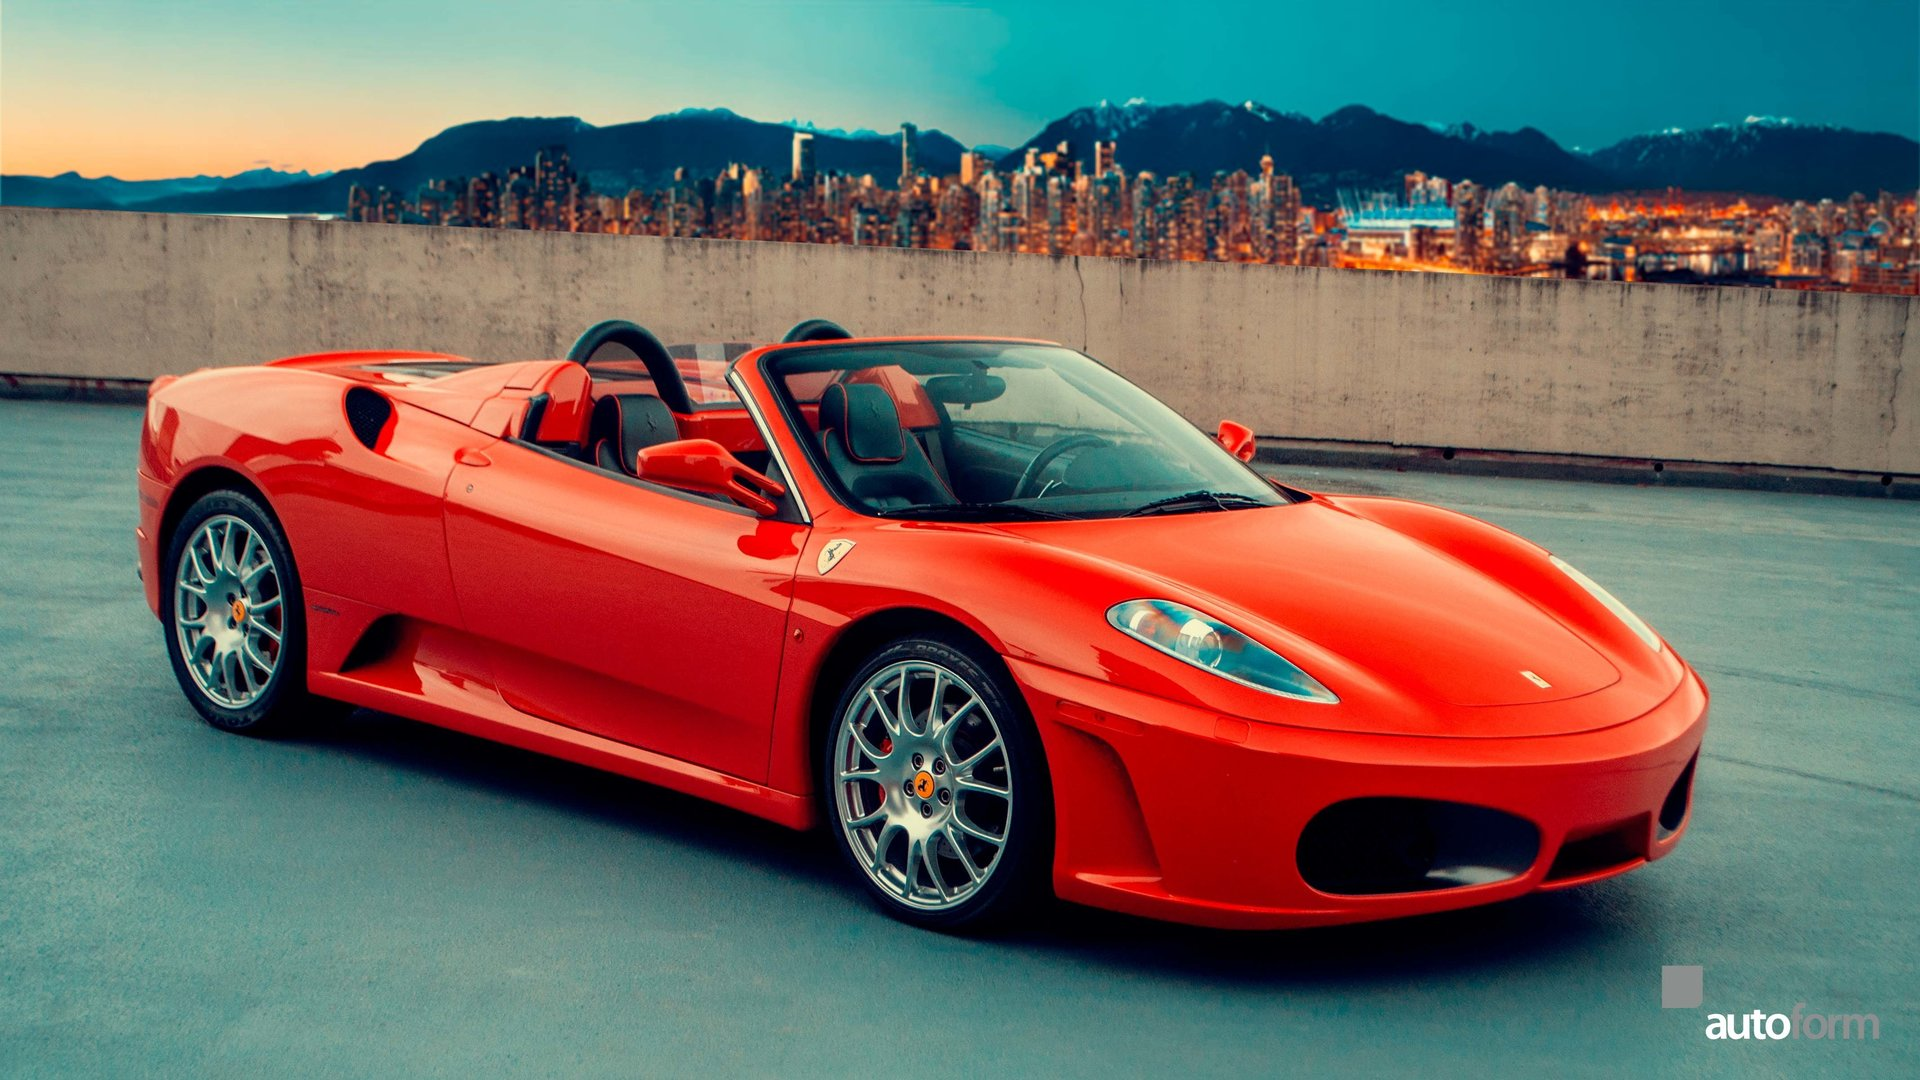 2007 ferrari f430 spider autoform. Black Bedroom Furniture Sets. Home Design Ideas